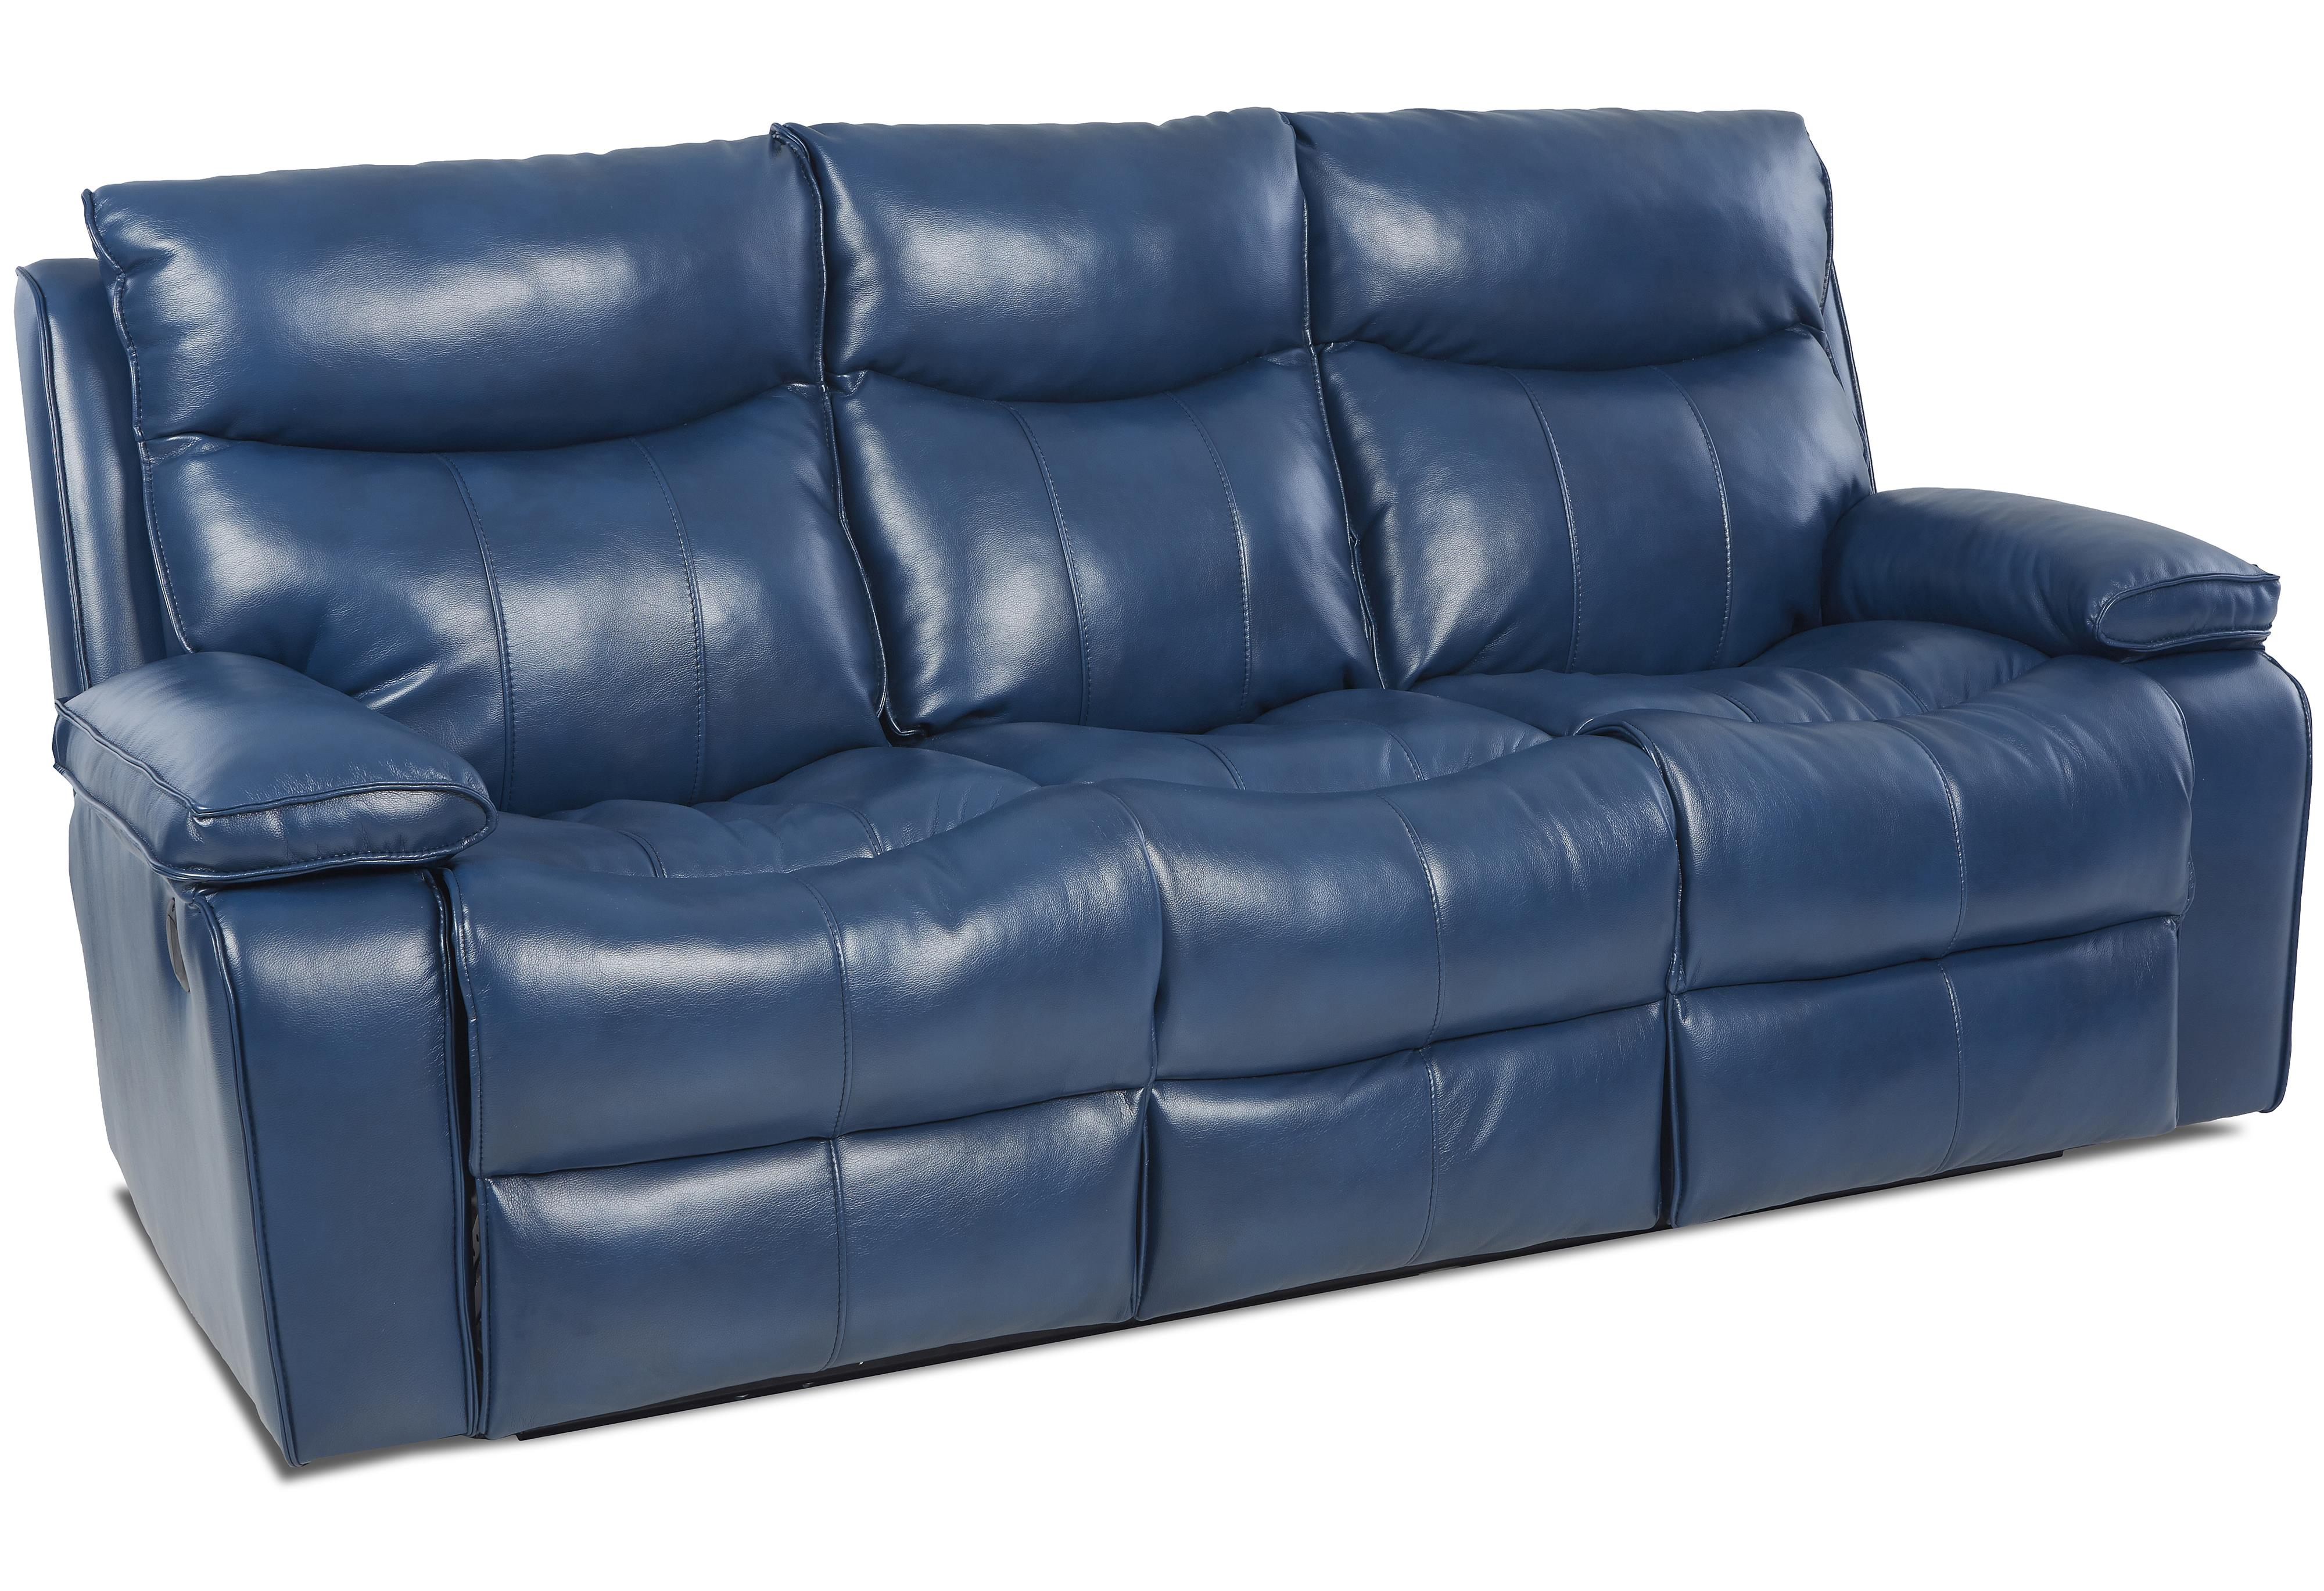 Klaussner Reclining Sofa And Loveseat Refil Sofa